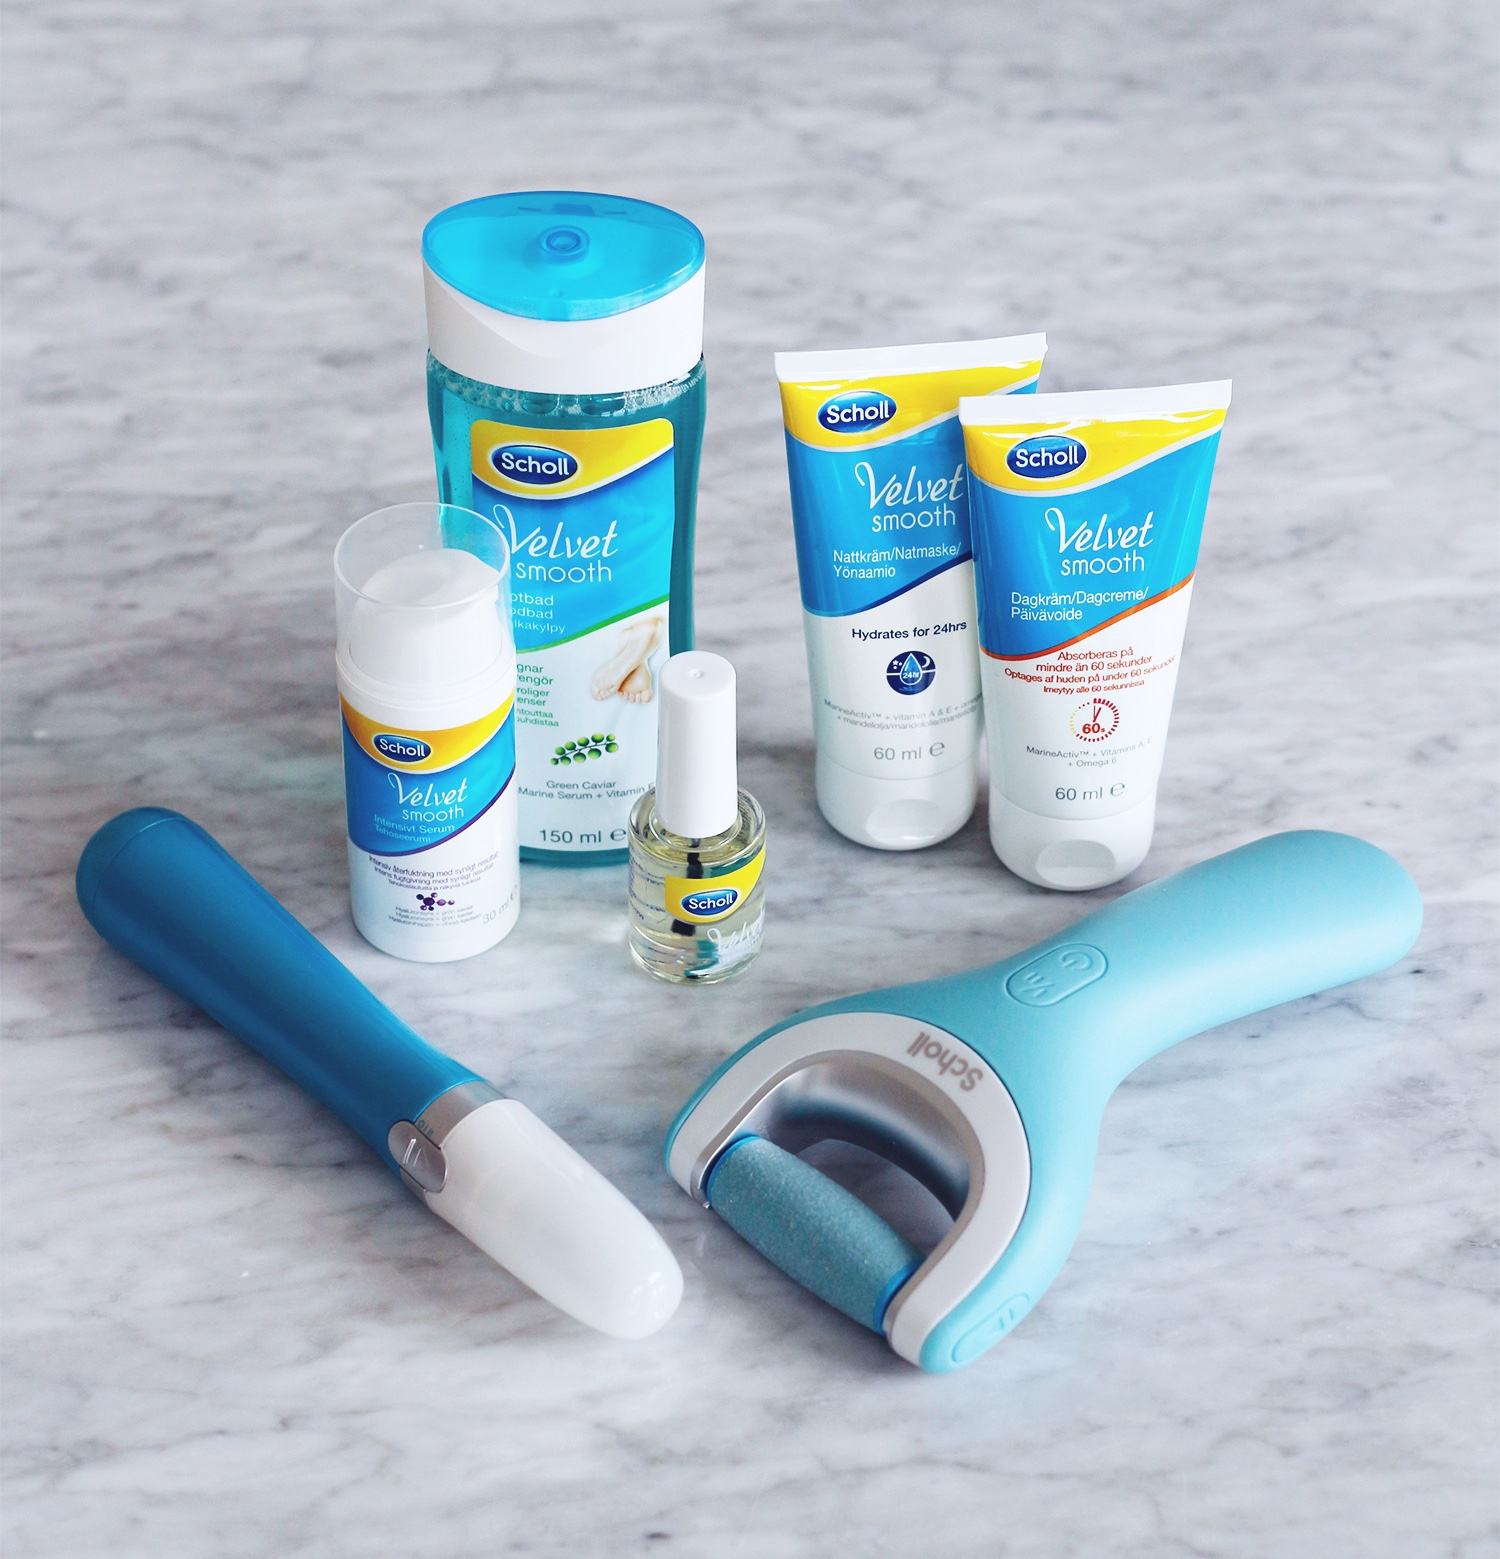 scholl-velvet-smooth-products